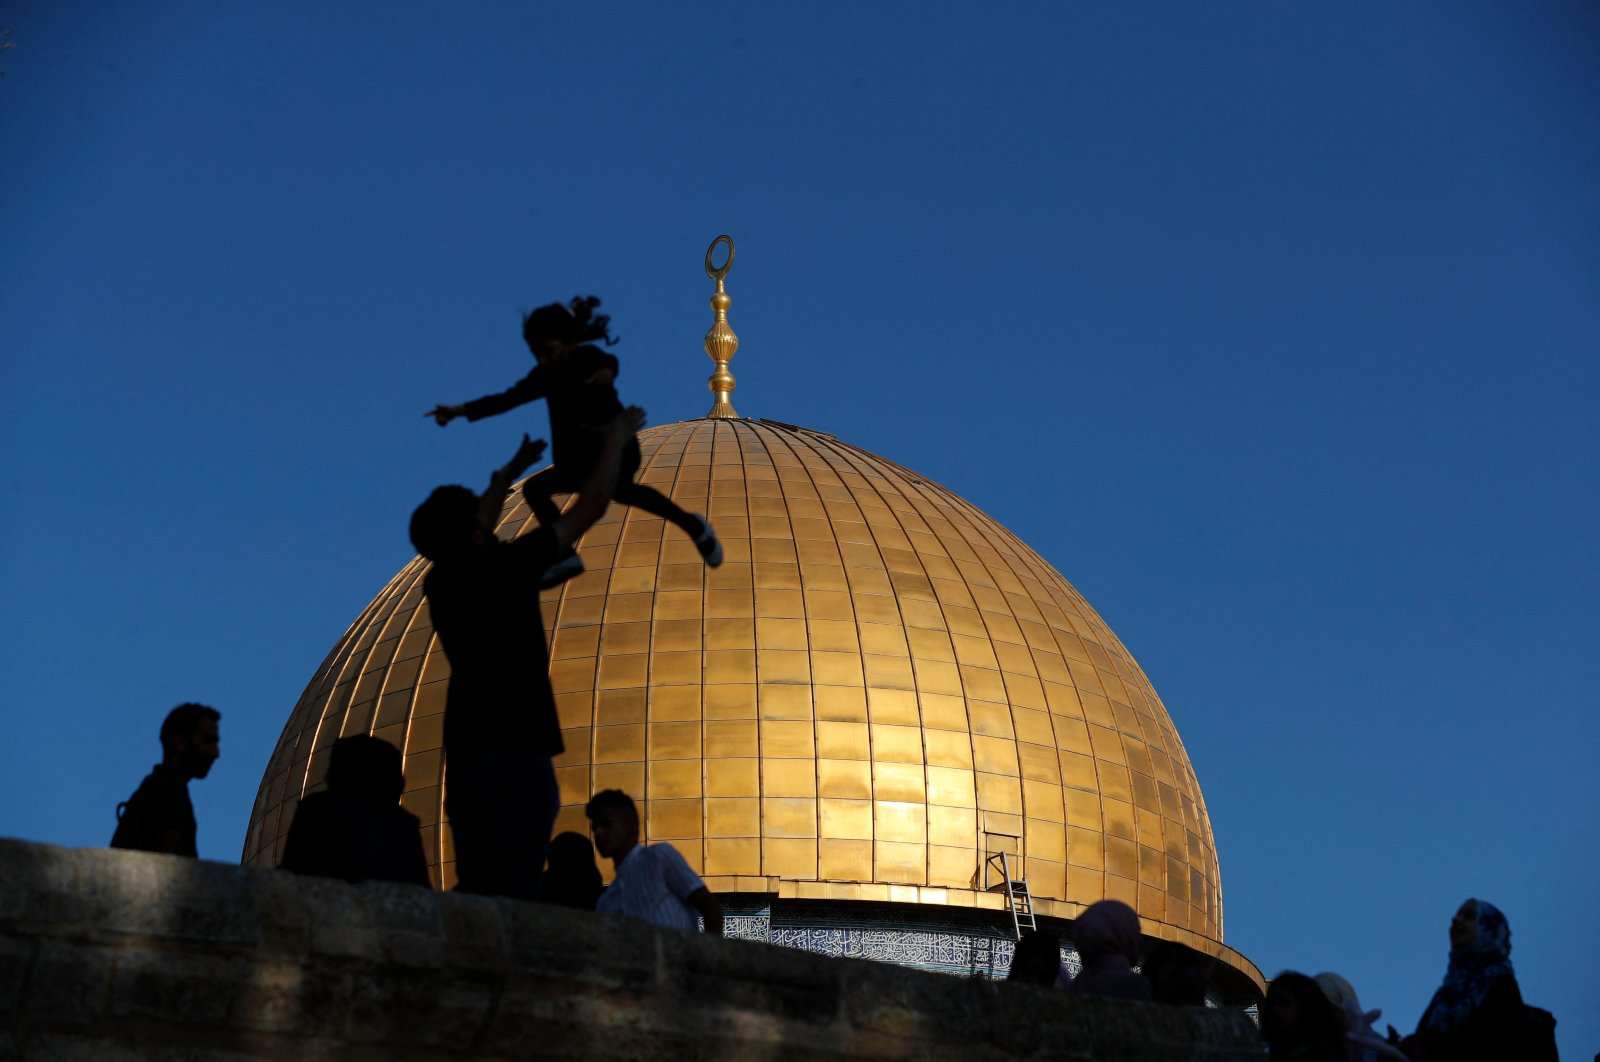 Muslim worshippers are silhouetted while celebrating in front of the Dome of the Rock mosque before the morning Ramadan Bayram prayer, which marks the end of the holy month of Ramadan, at the Al-Aqsa Mosques compound in Jerusalem, May 13, 2021. (AFP Photo)